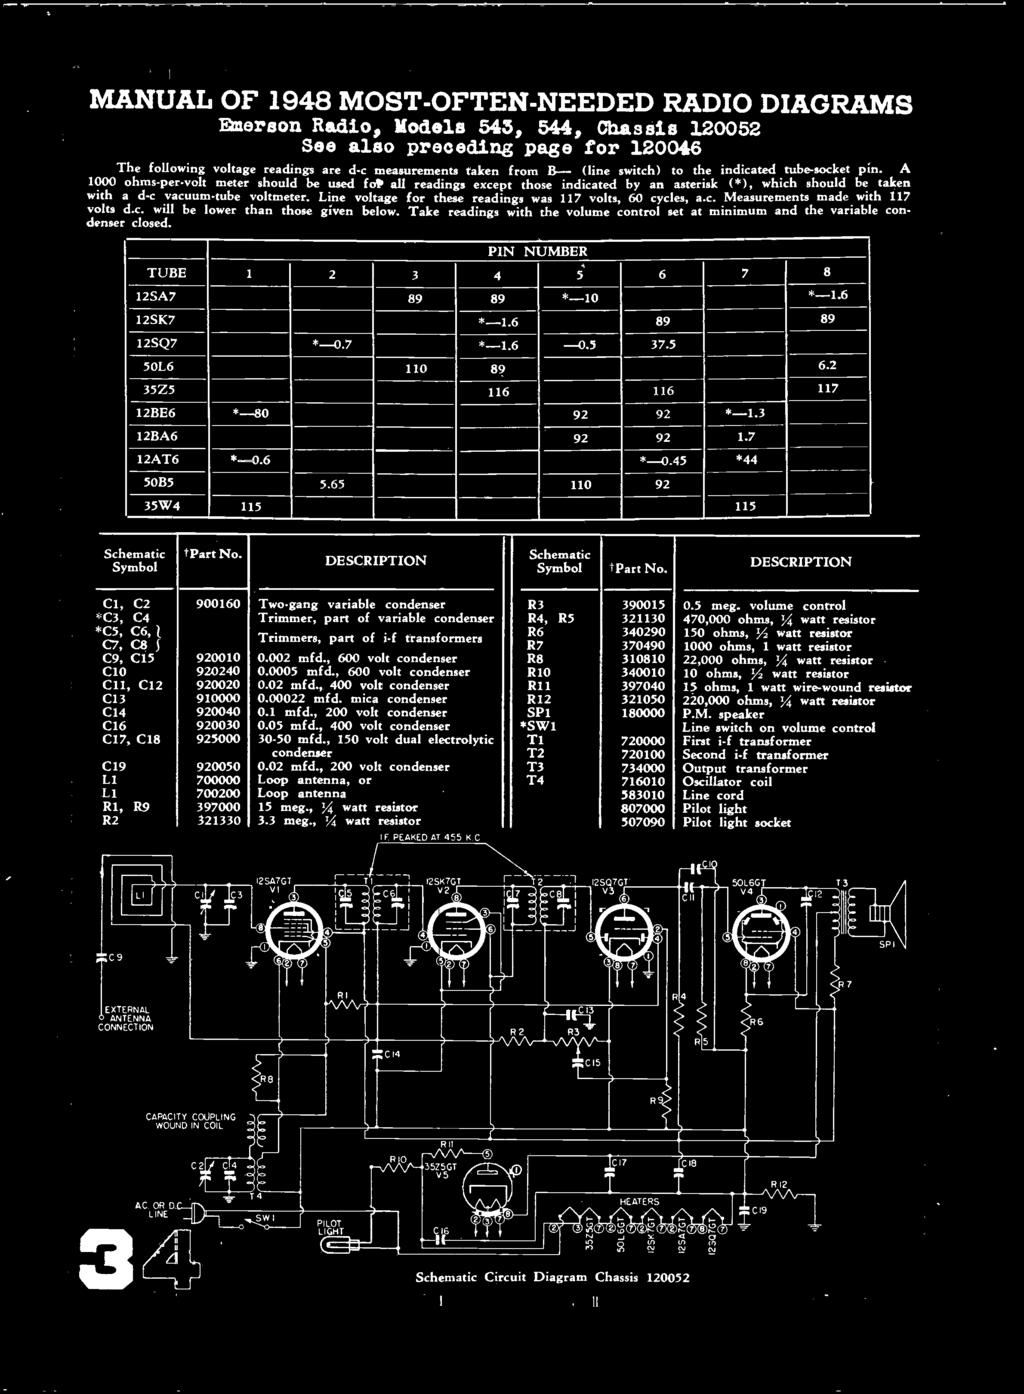 Radio Diagrams Most Often Needed And Servicing Information 200 Volume Potentiometer Wiring Diagram On A Receptacle From 1 Ohms Per Volt Meter Should Be Used Foto All Readings Except Those 38 Manual